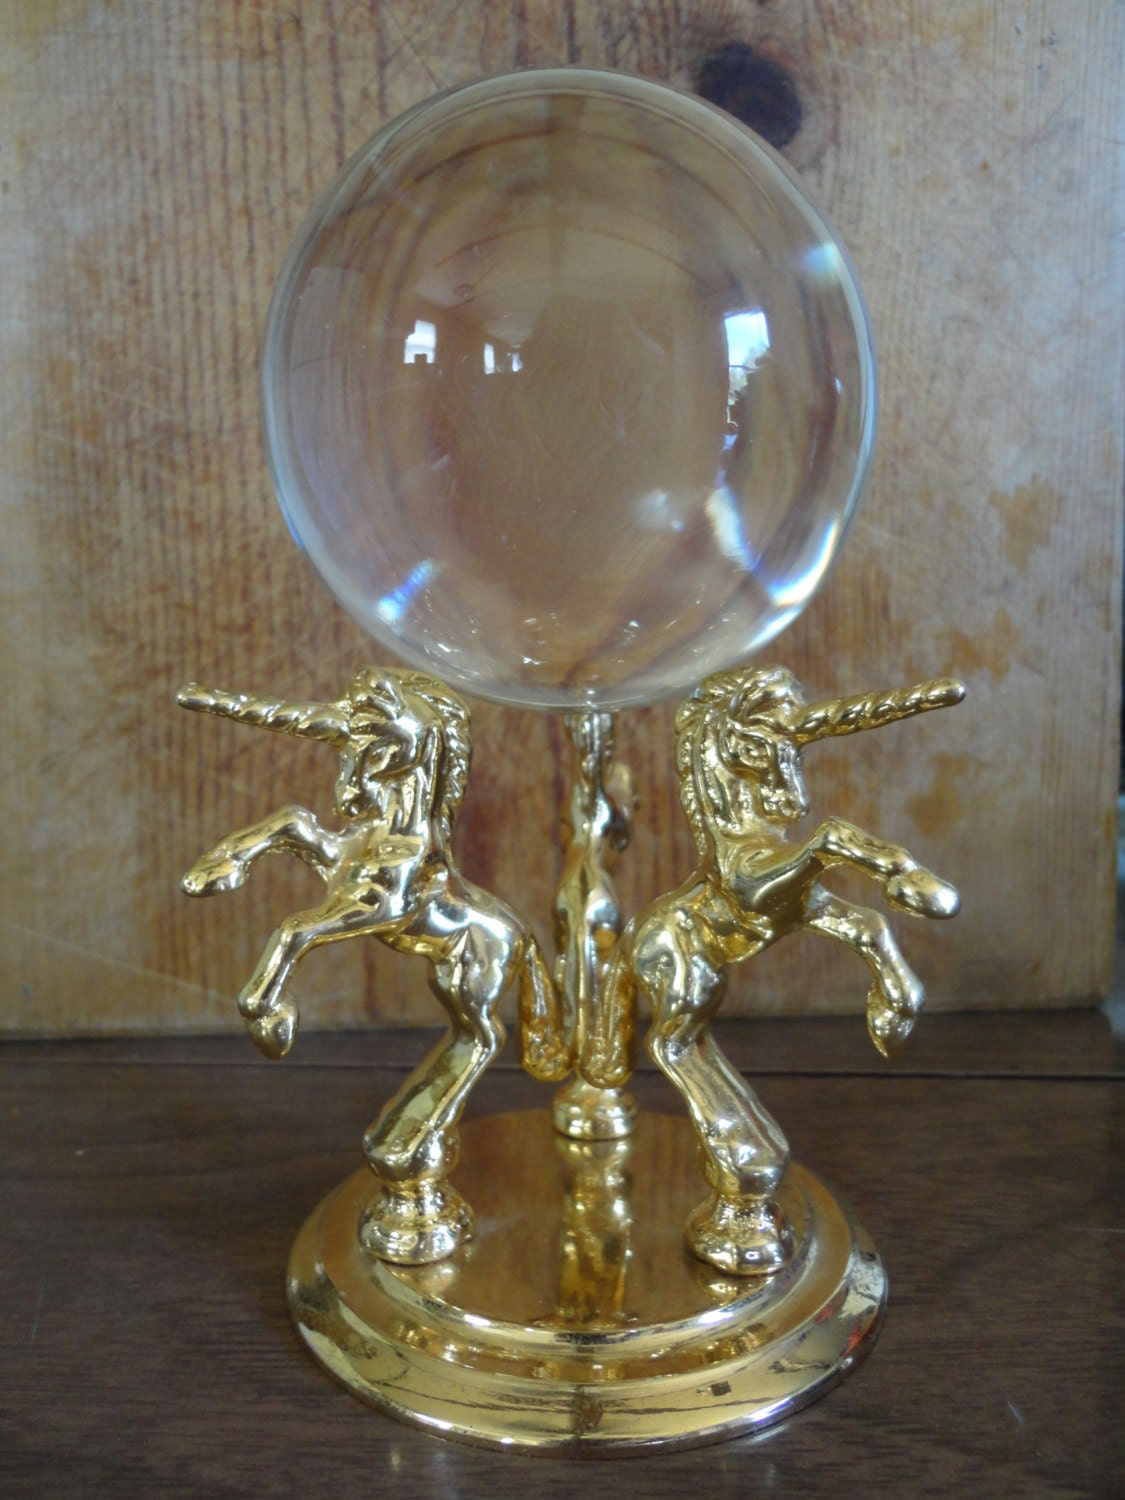 Crystal Ball Fortune Telling Crystal Ball Unicorn Horse Crystal Ball Fortune Teller